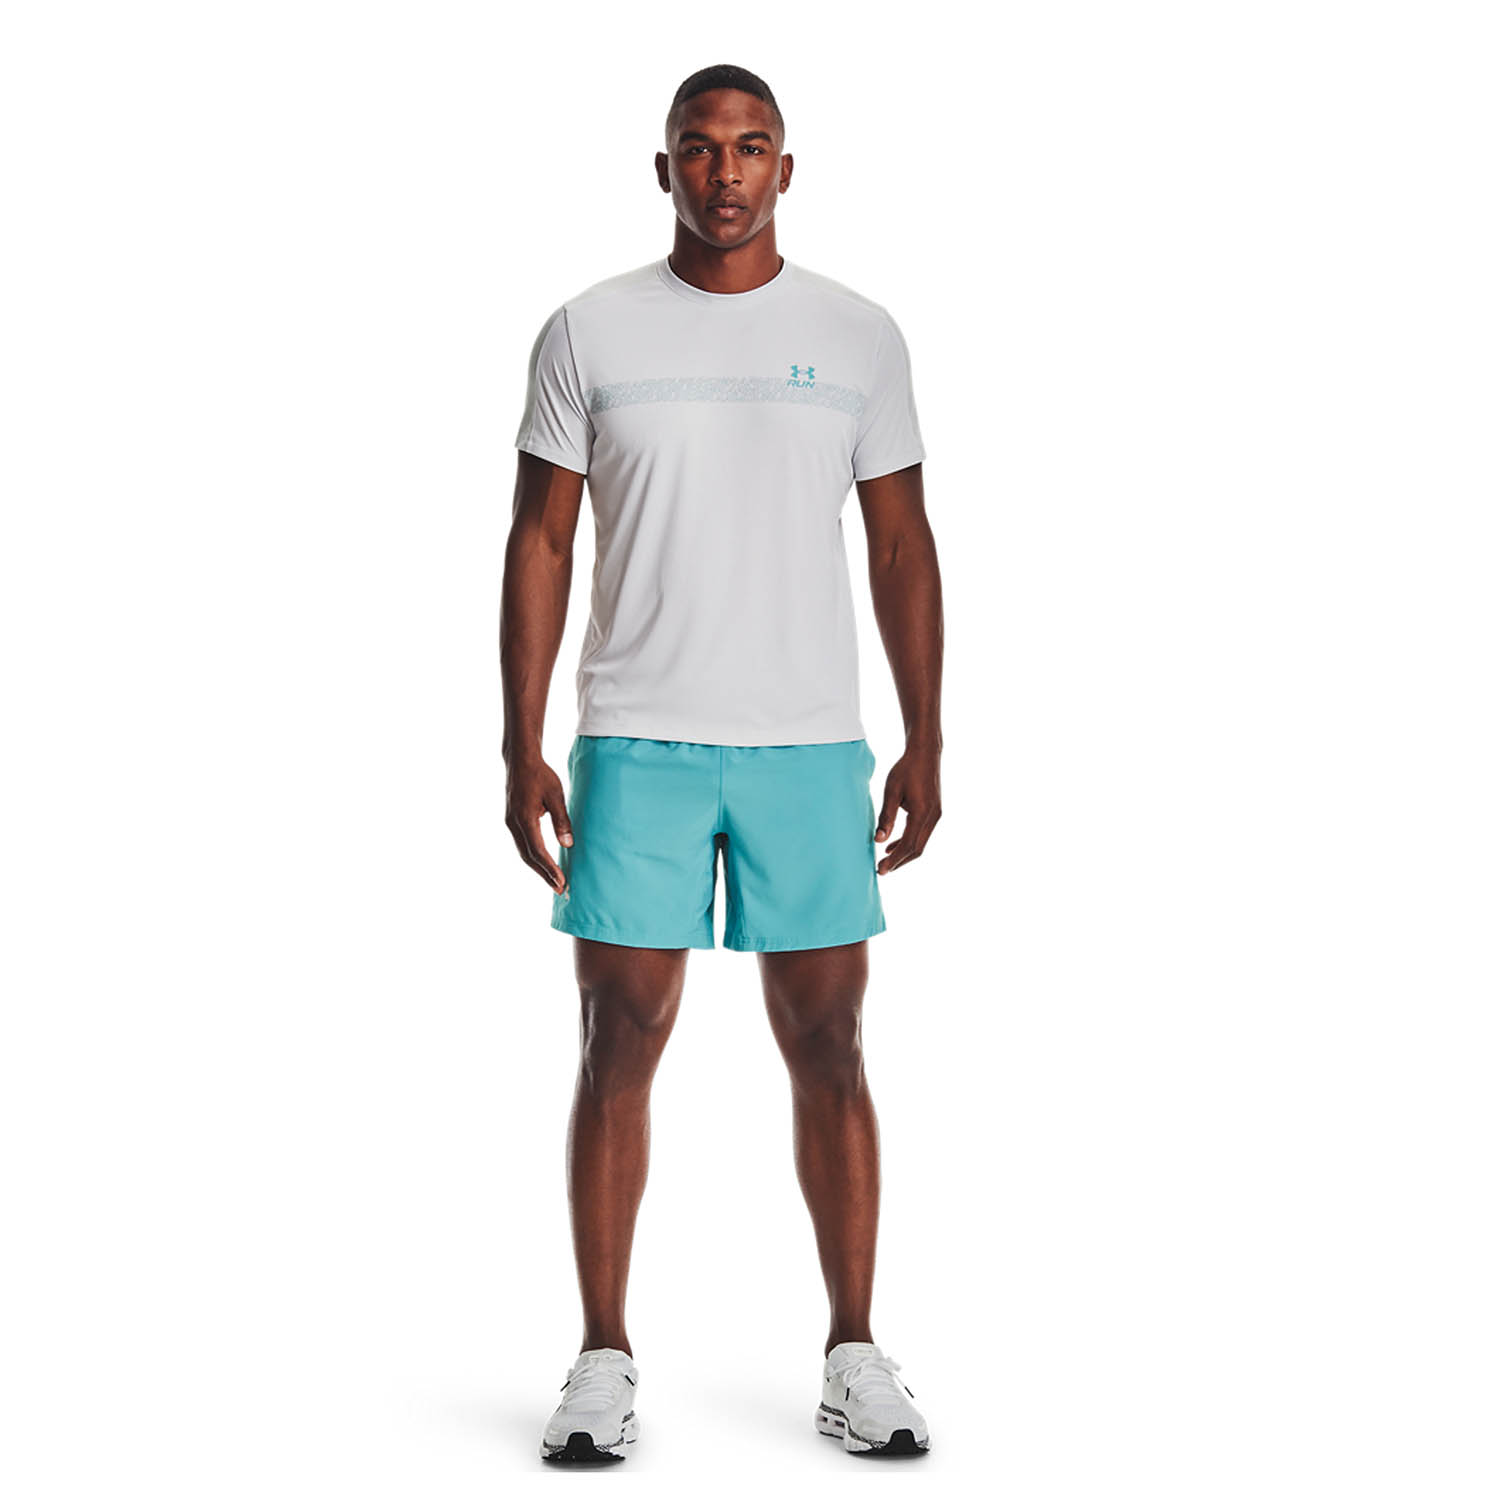 Under Armour Speed Stride Graphic T-Shirt - Halo Gray